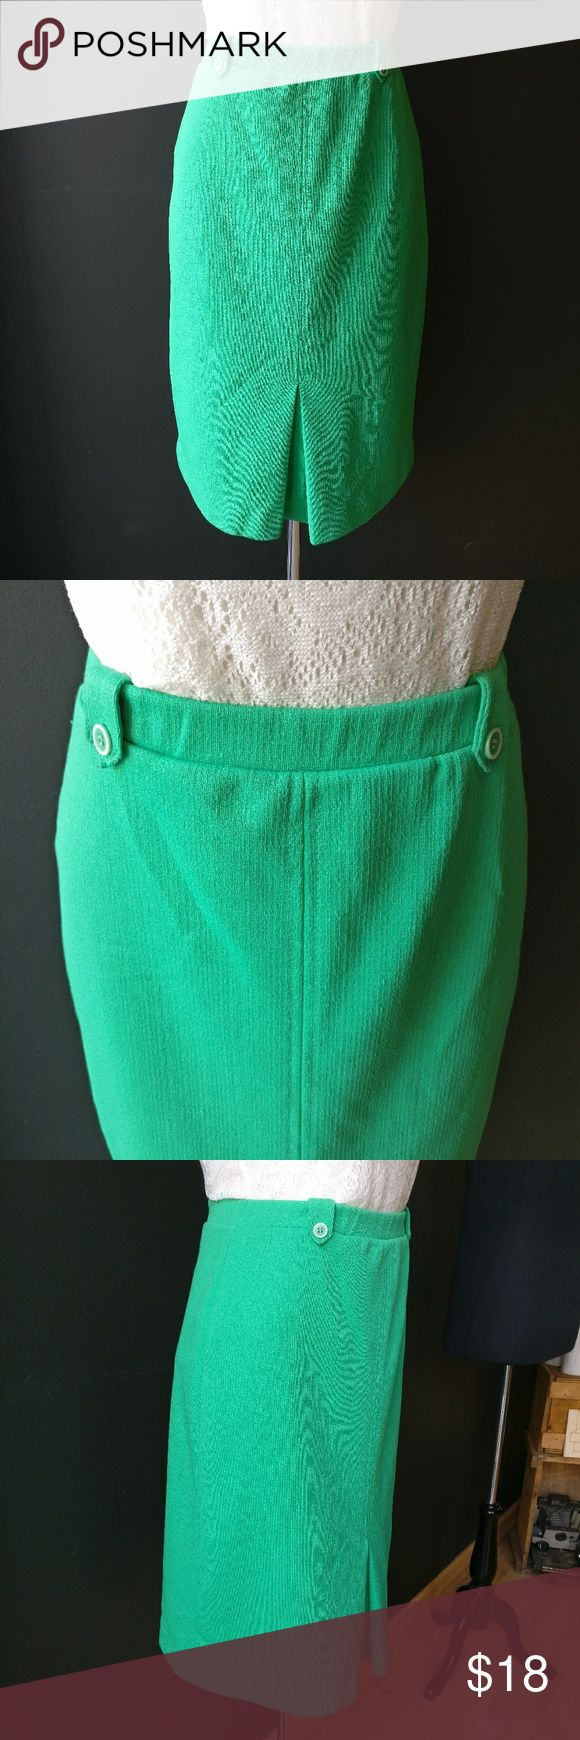 The Petite Concept Vintage Green Pencil Skirt The Petite Concept by Devon Vintage Green Pencil Skirt  Two buttons on front  Elastic waist  This is a vintage, petite size 8. Fits more like a 4/ small. Small snag as shown in photo with finger for scale. The Petite Concept  Skirts Pencil